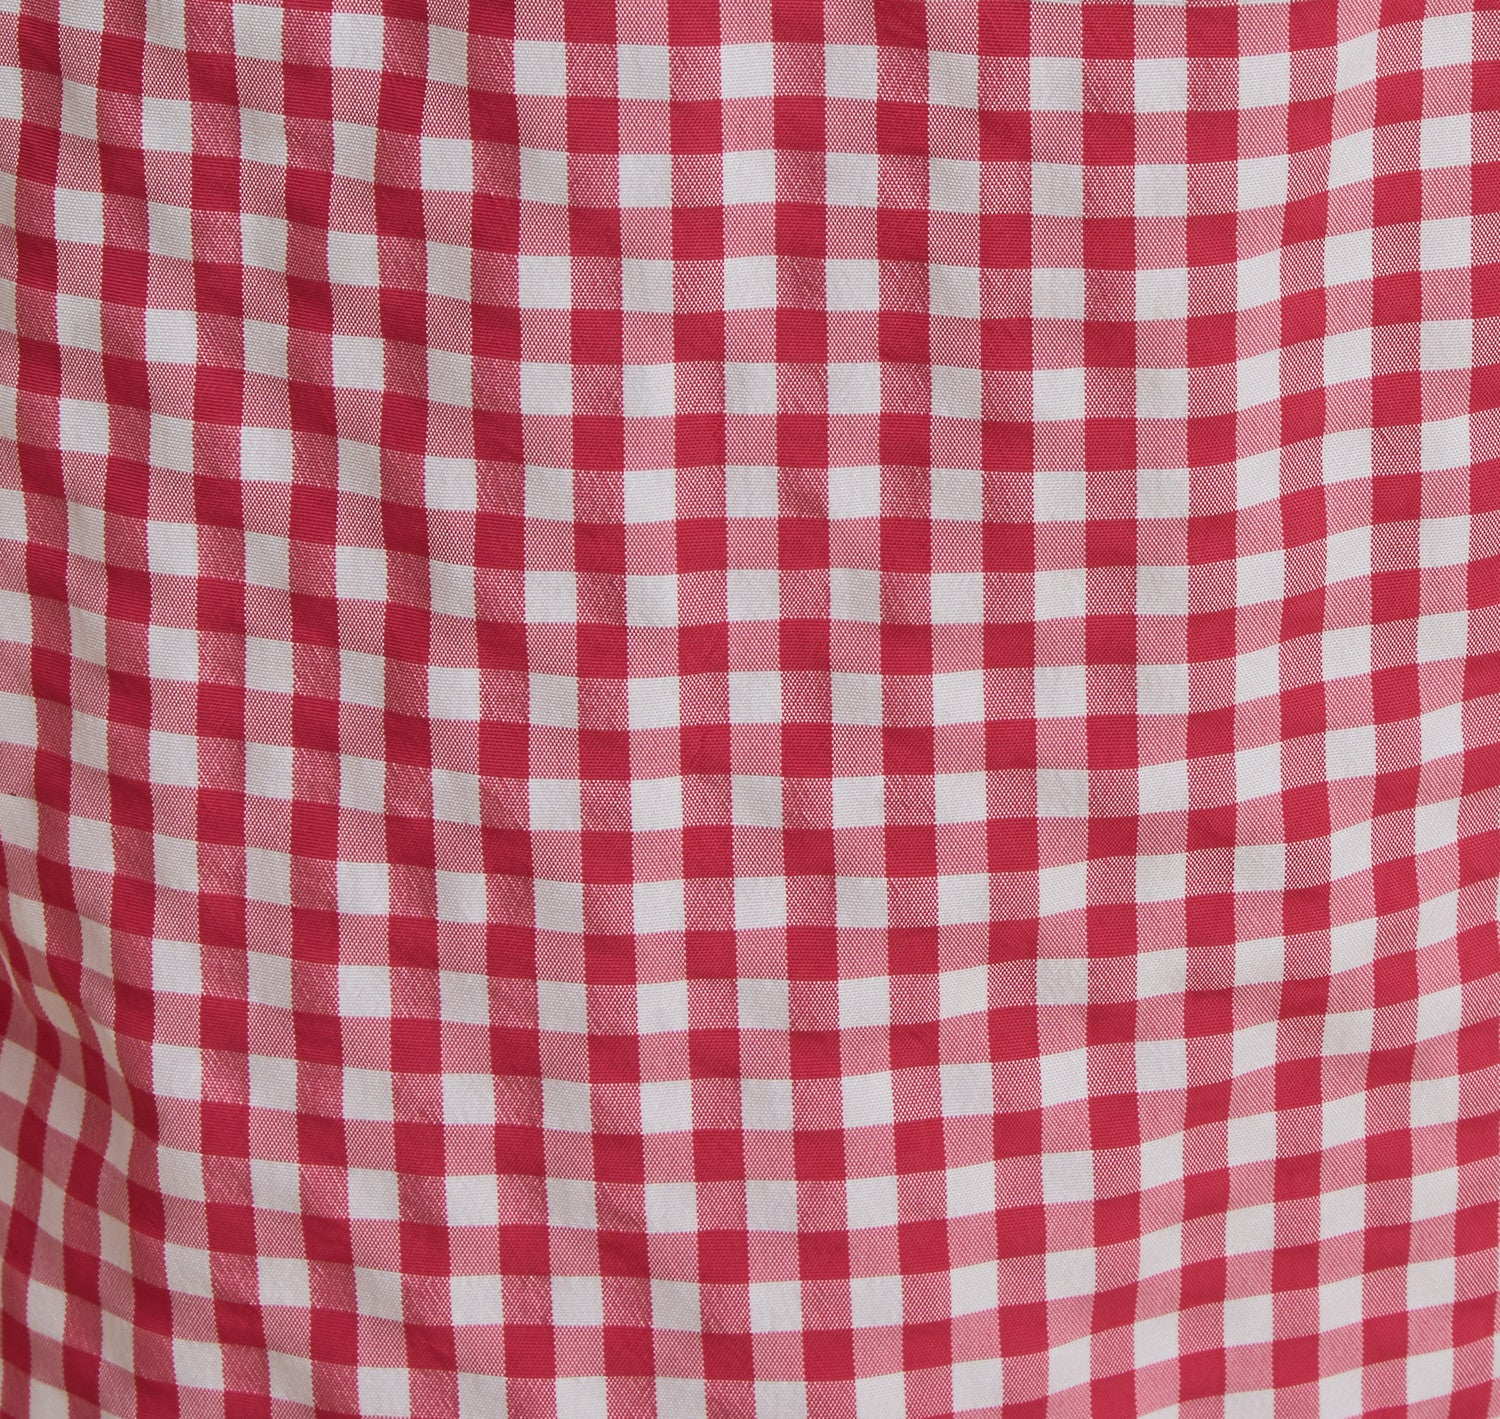 Barbour Gingham Swim Shorts for Men in Pink